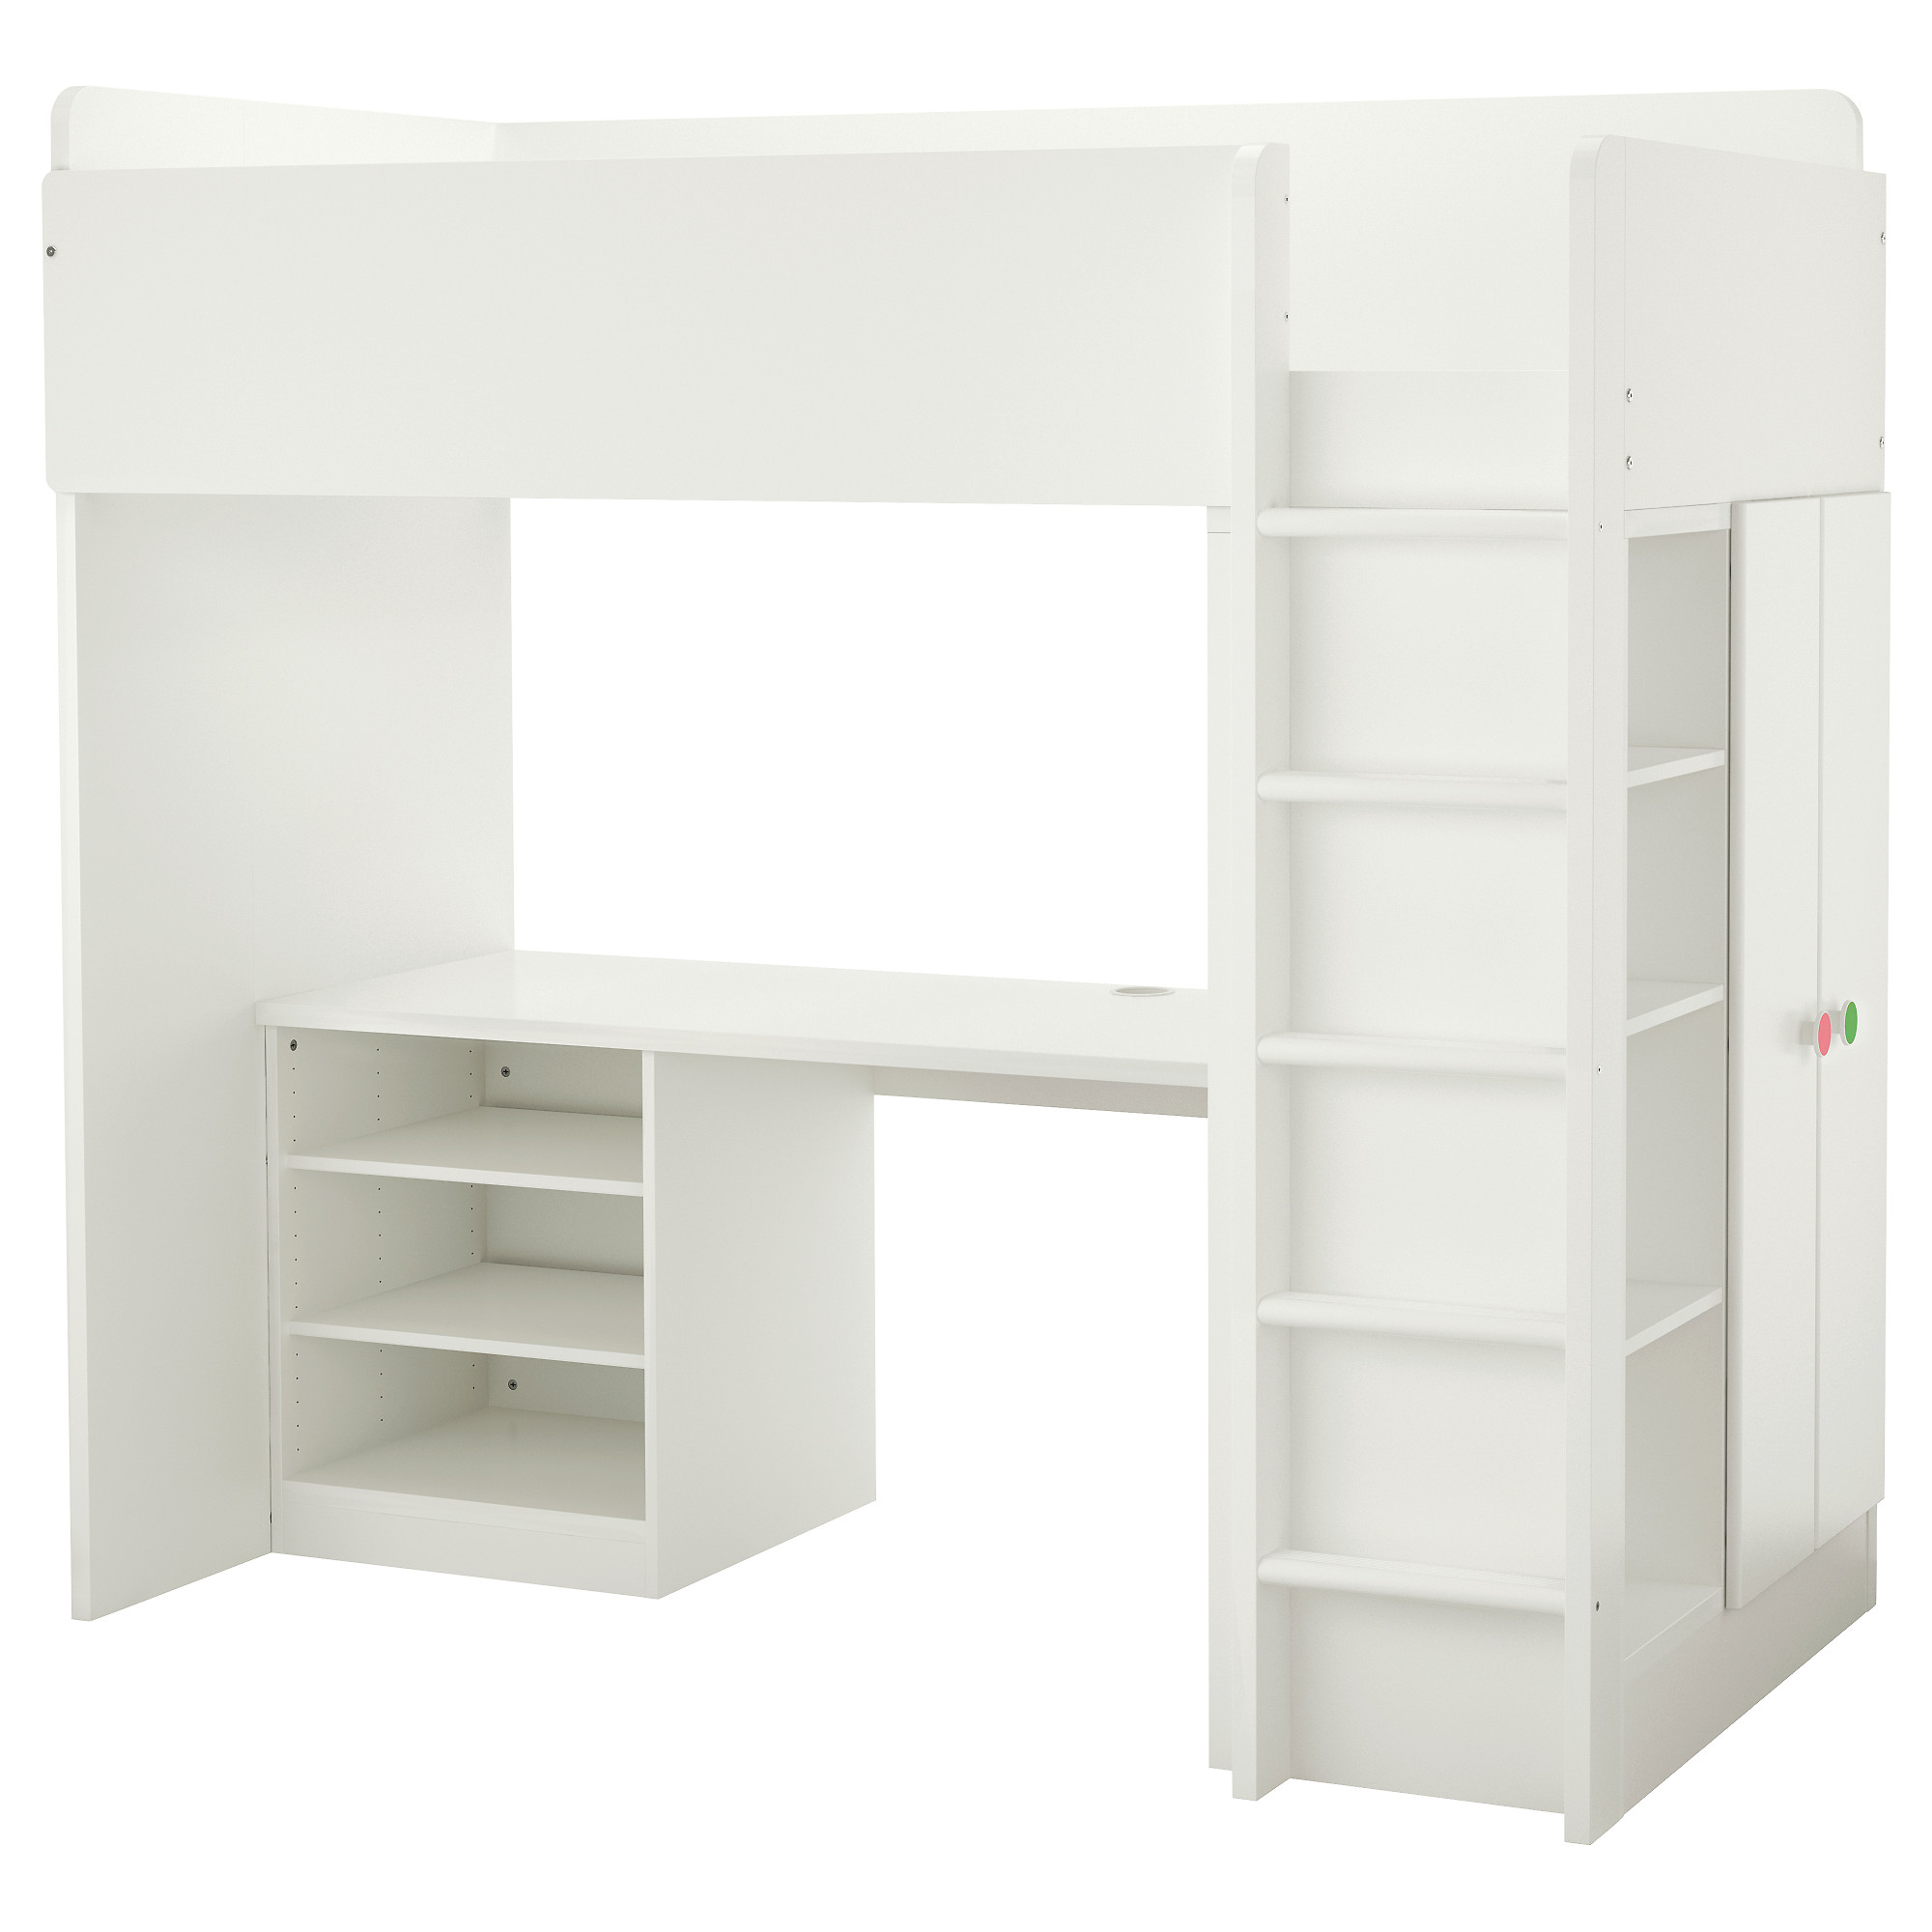 Bunk bed with desk underneath ikea - Stuva F Lja Loft Bed With 2 Shelves 2 Doors White Height 76